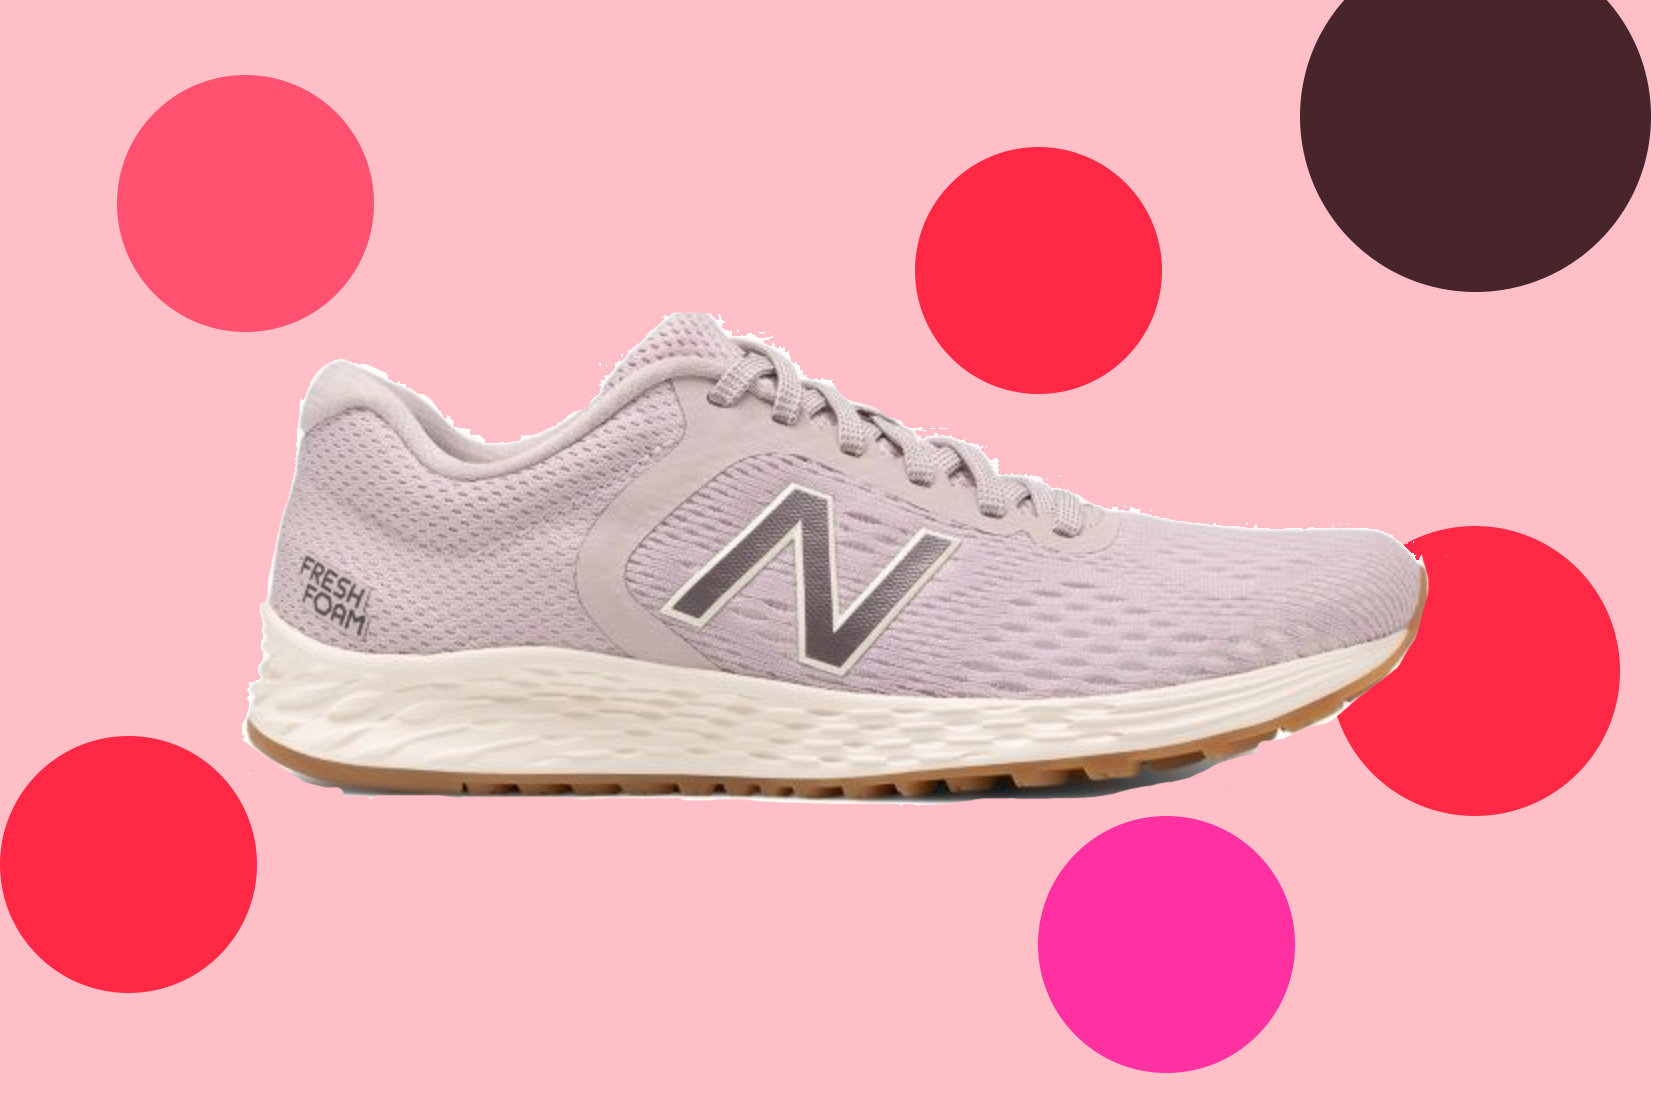 aceptable deficiencia espejo  Save up to 70% during Joe's New Balance Outlet summer clearance sale